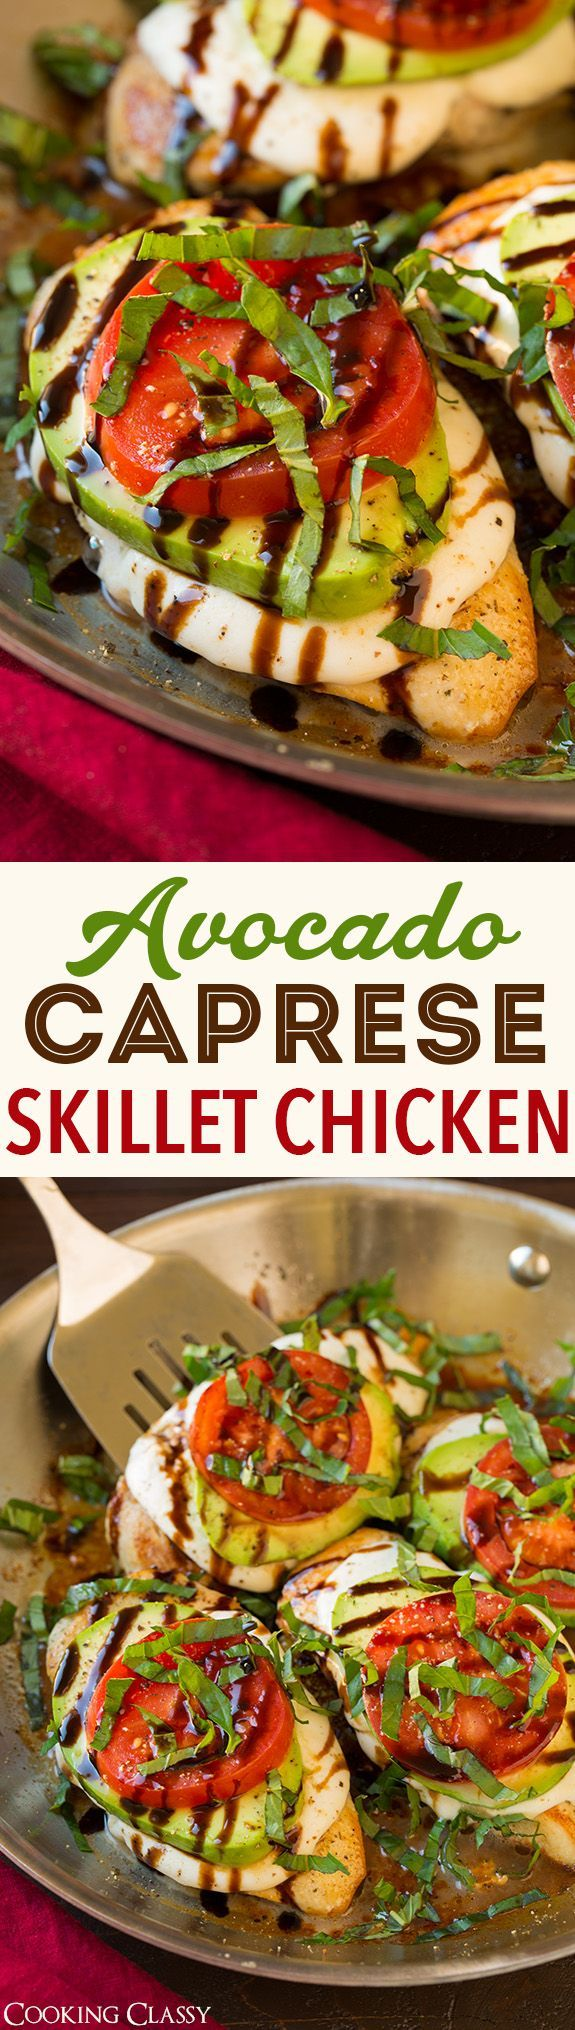 Avocado Caprese Skillet Chicken